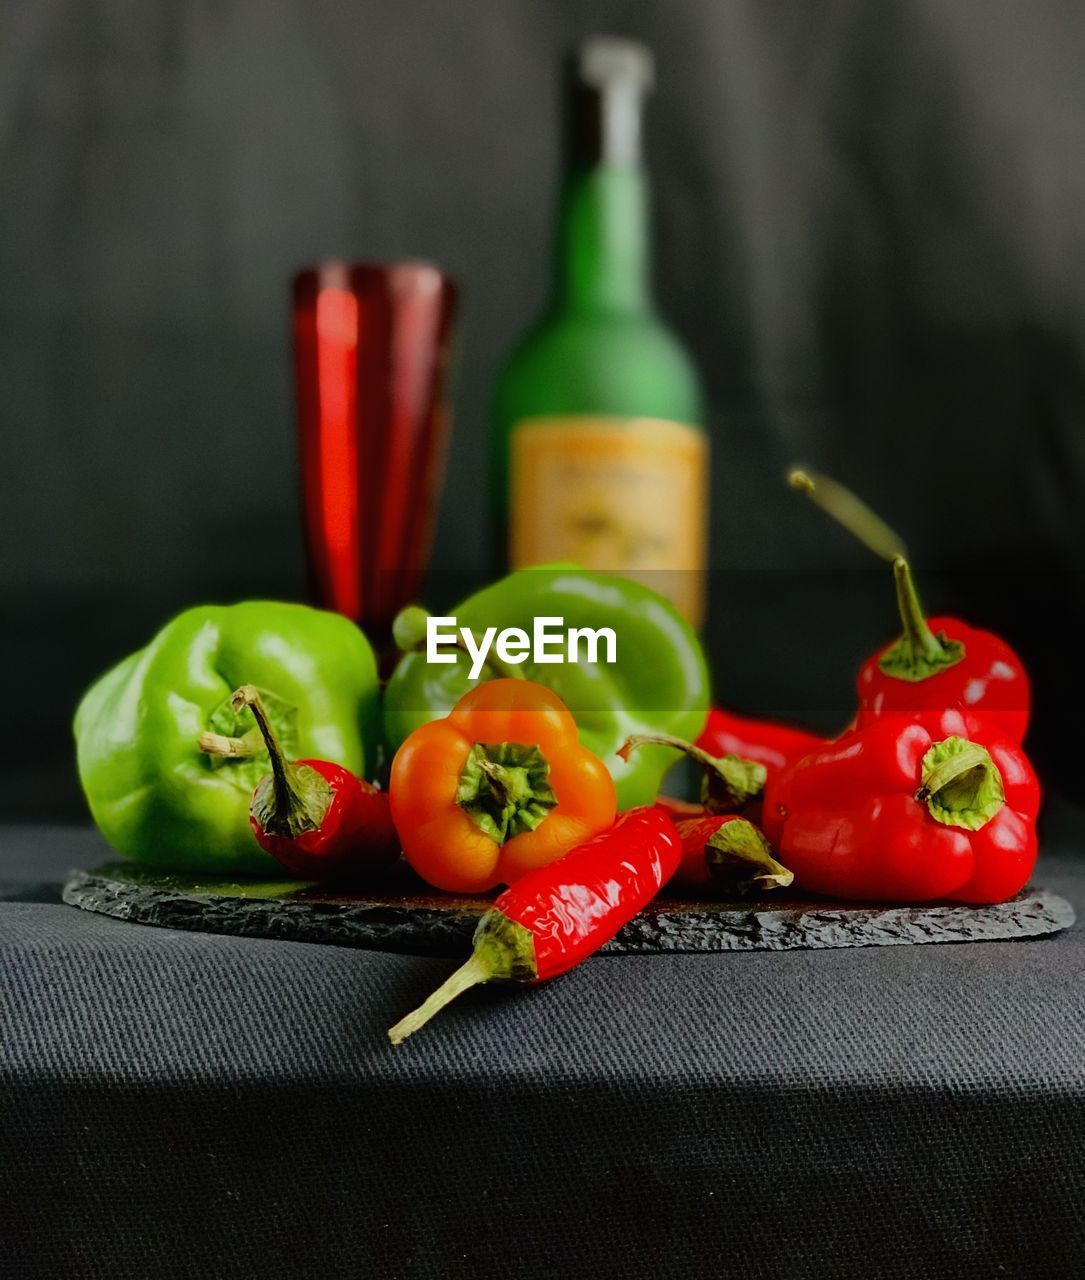 CLOSE-UP OF RED CHILI PEPPERS AND VEGETABLES ON TABLE